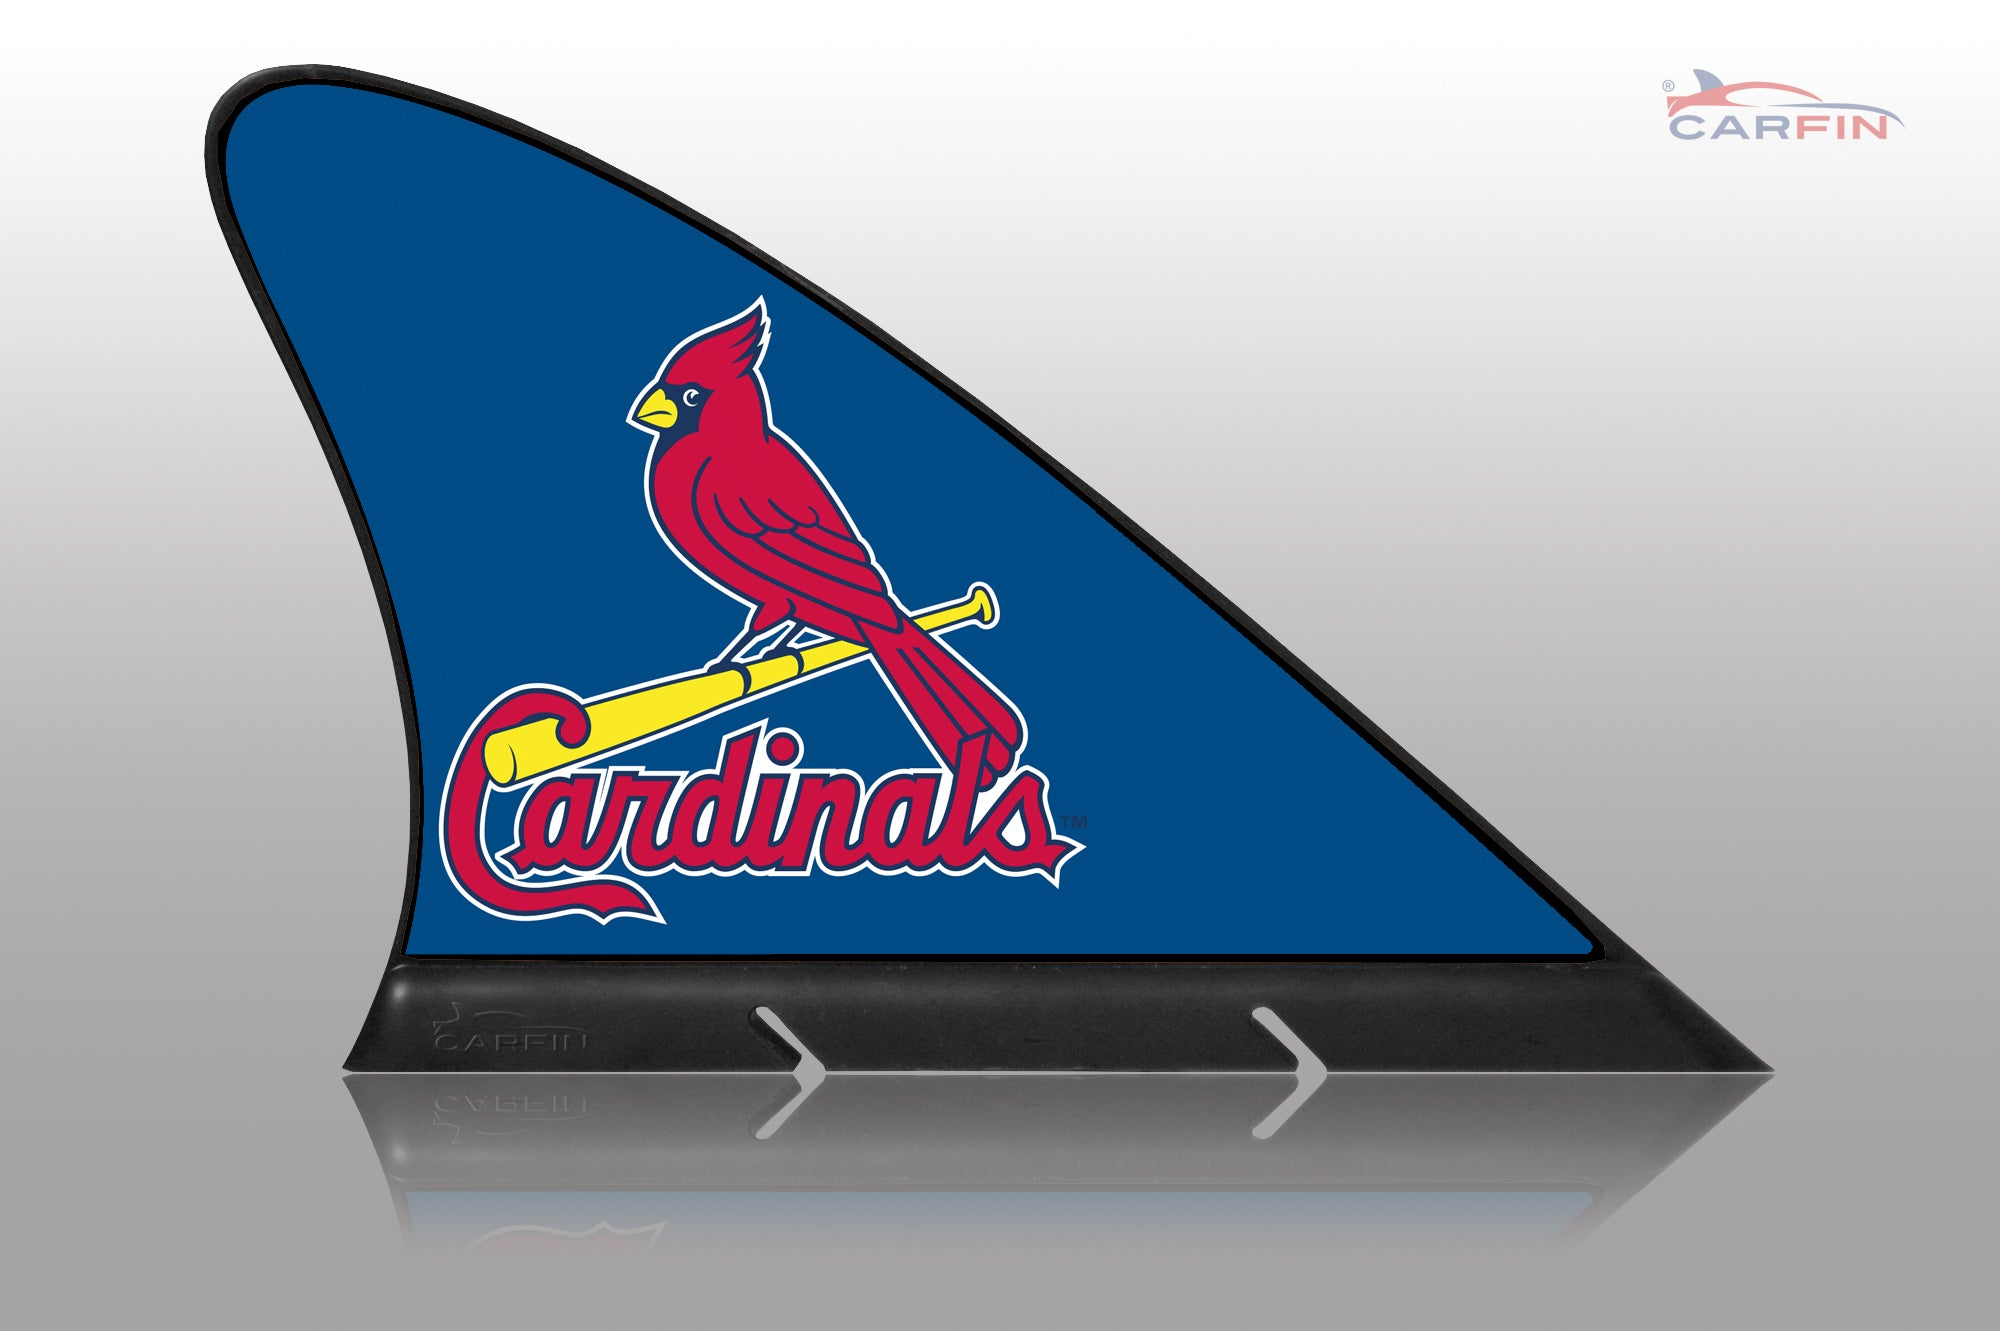 St. Louis Cardinals Car Flag, CARFIN  Magnetic Car Flag. - Carfin